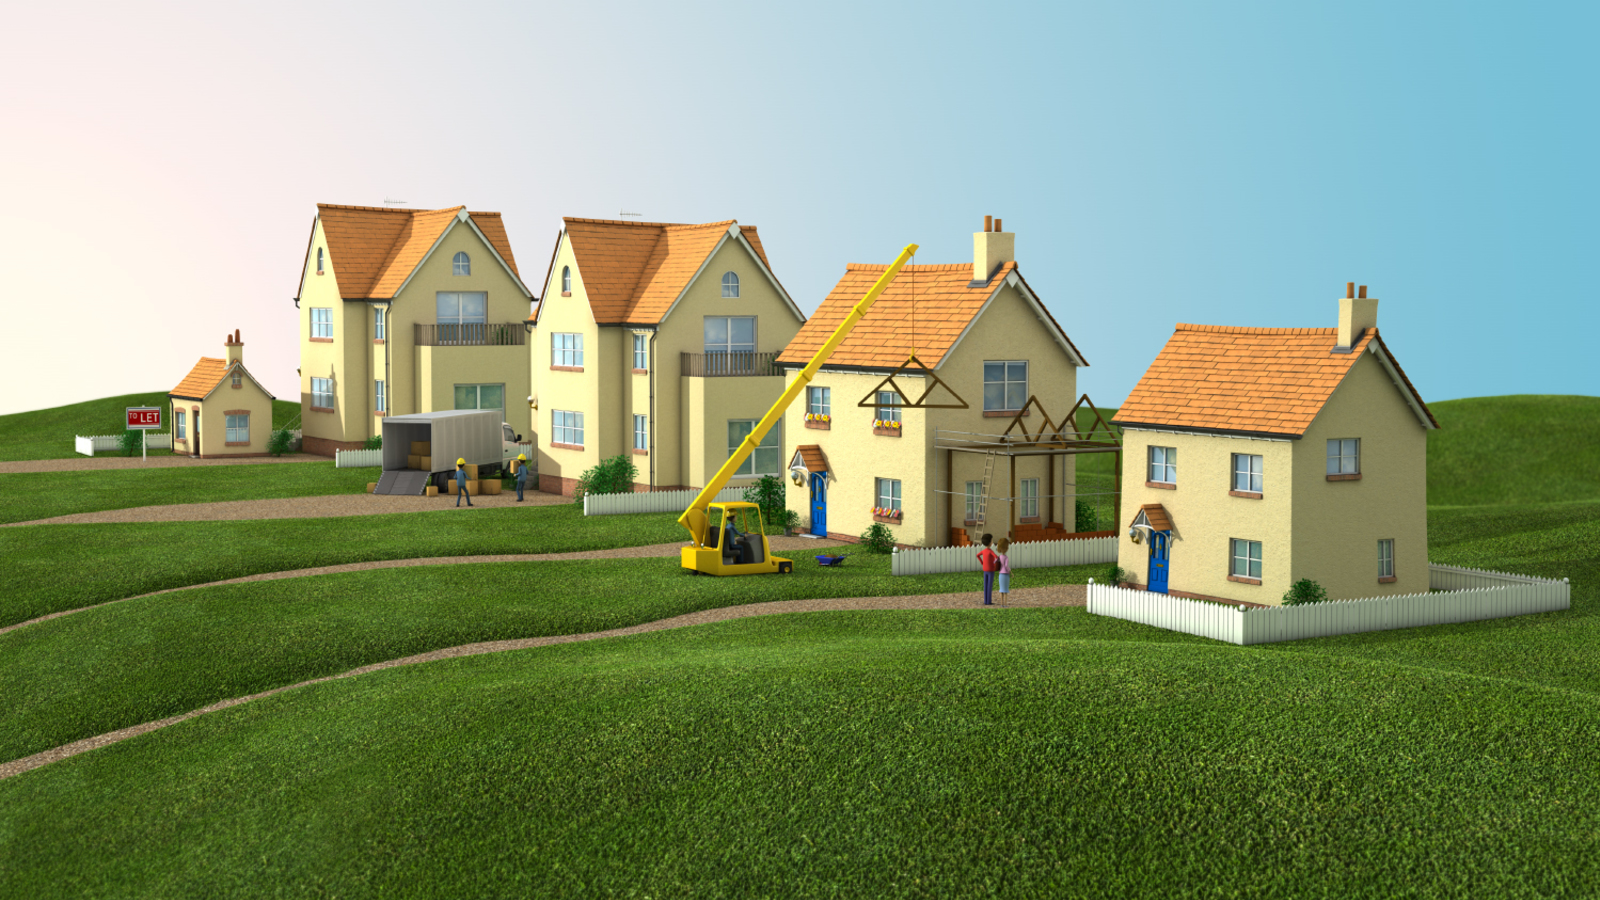 Which houses 3d render